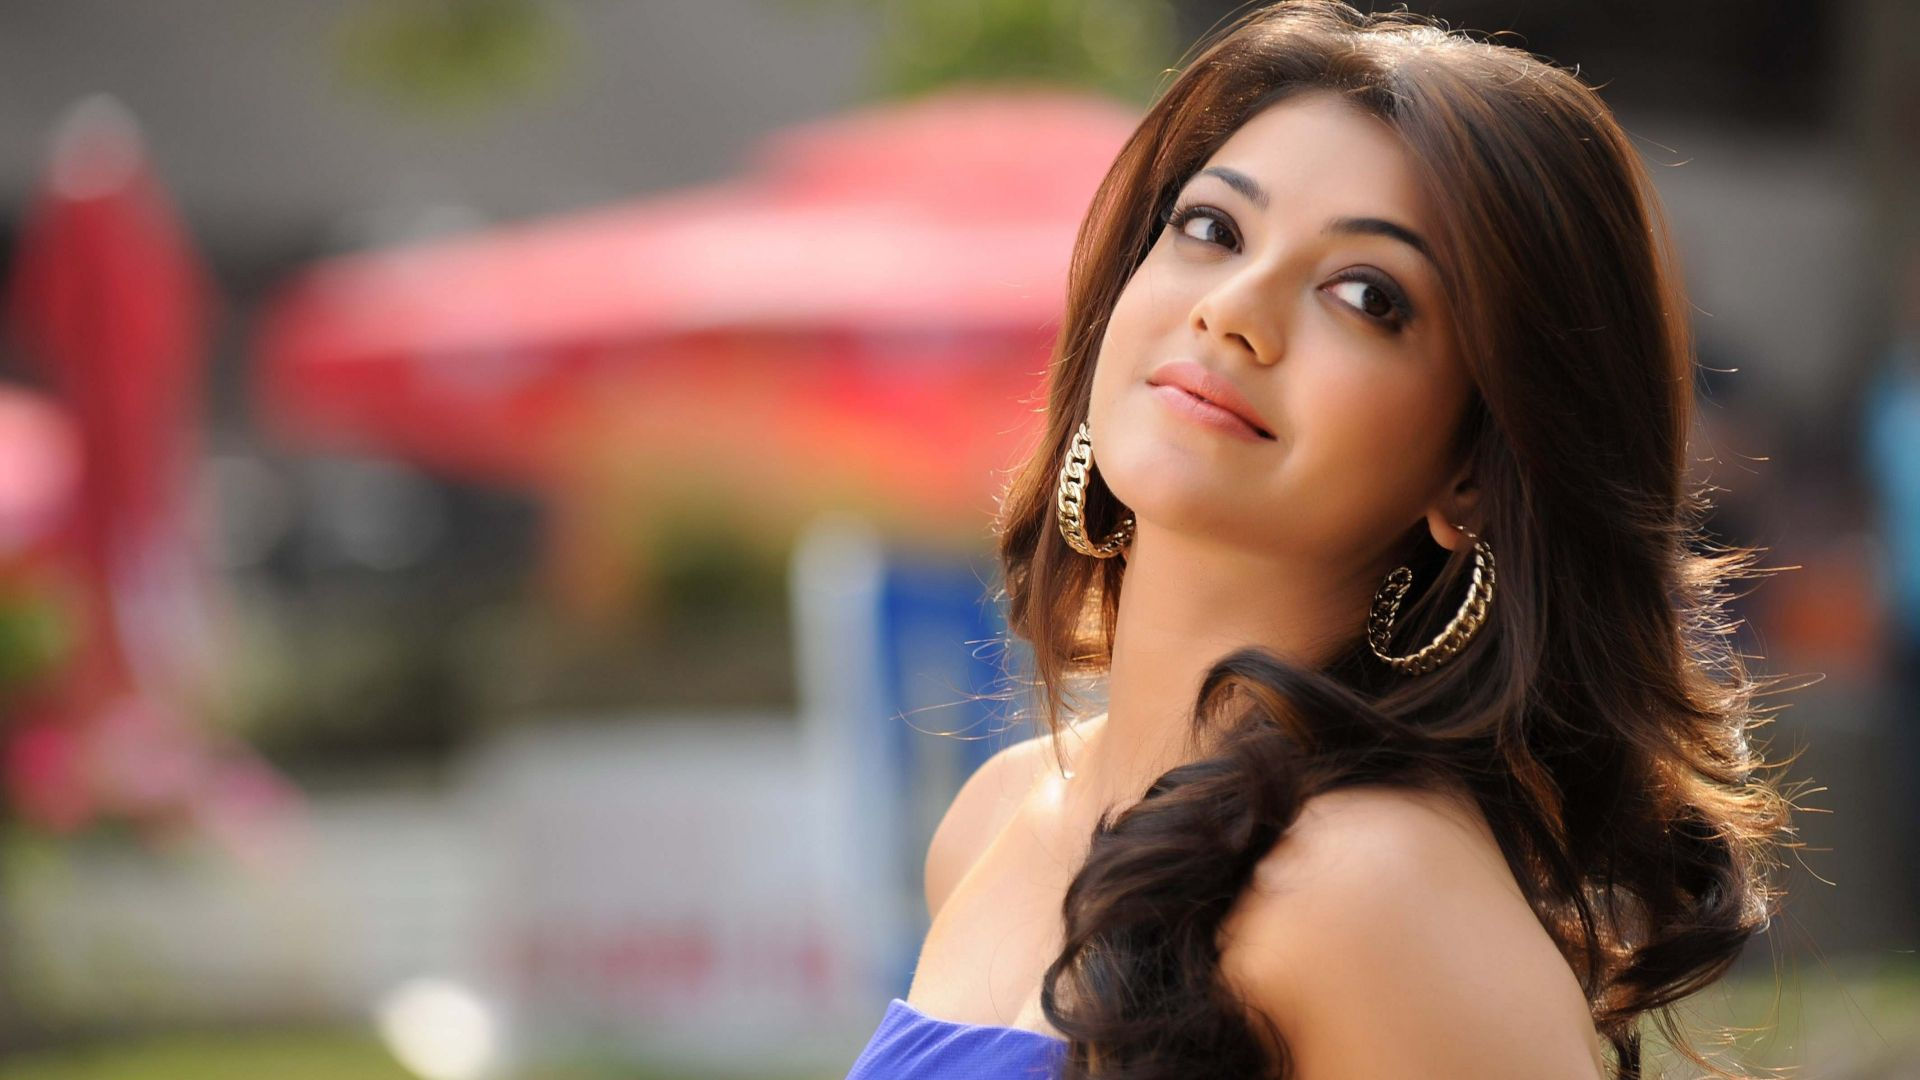 wallpaper kajal aggarwal, beauty, bollywood, 4k, celebrities #14930